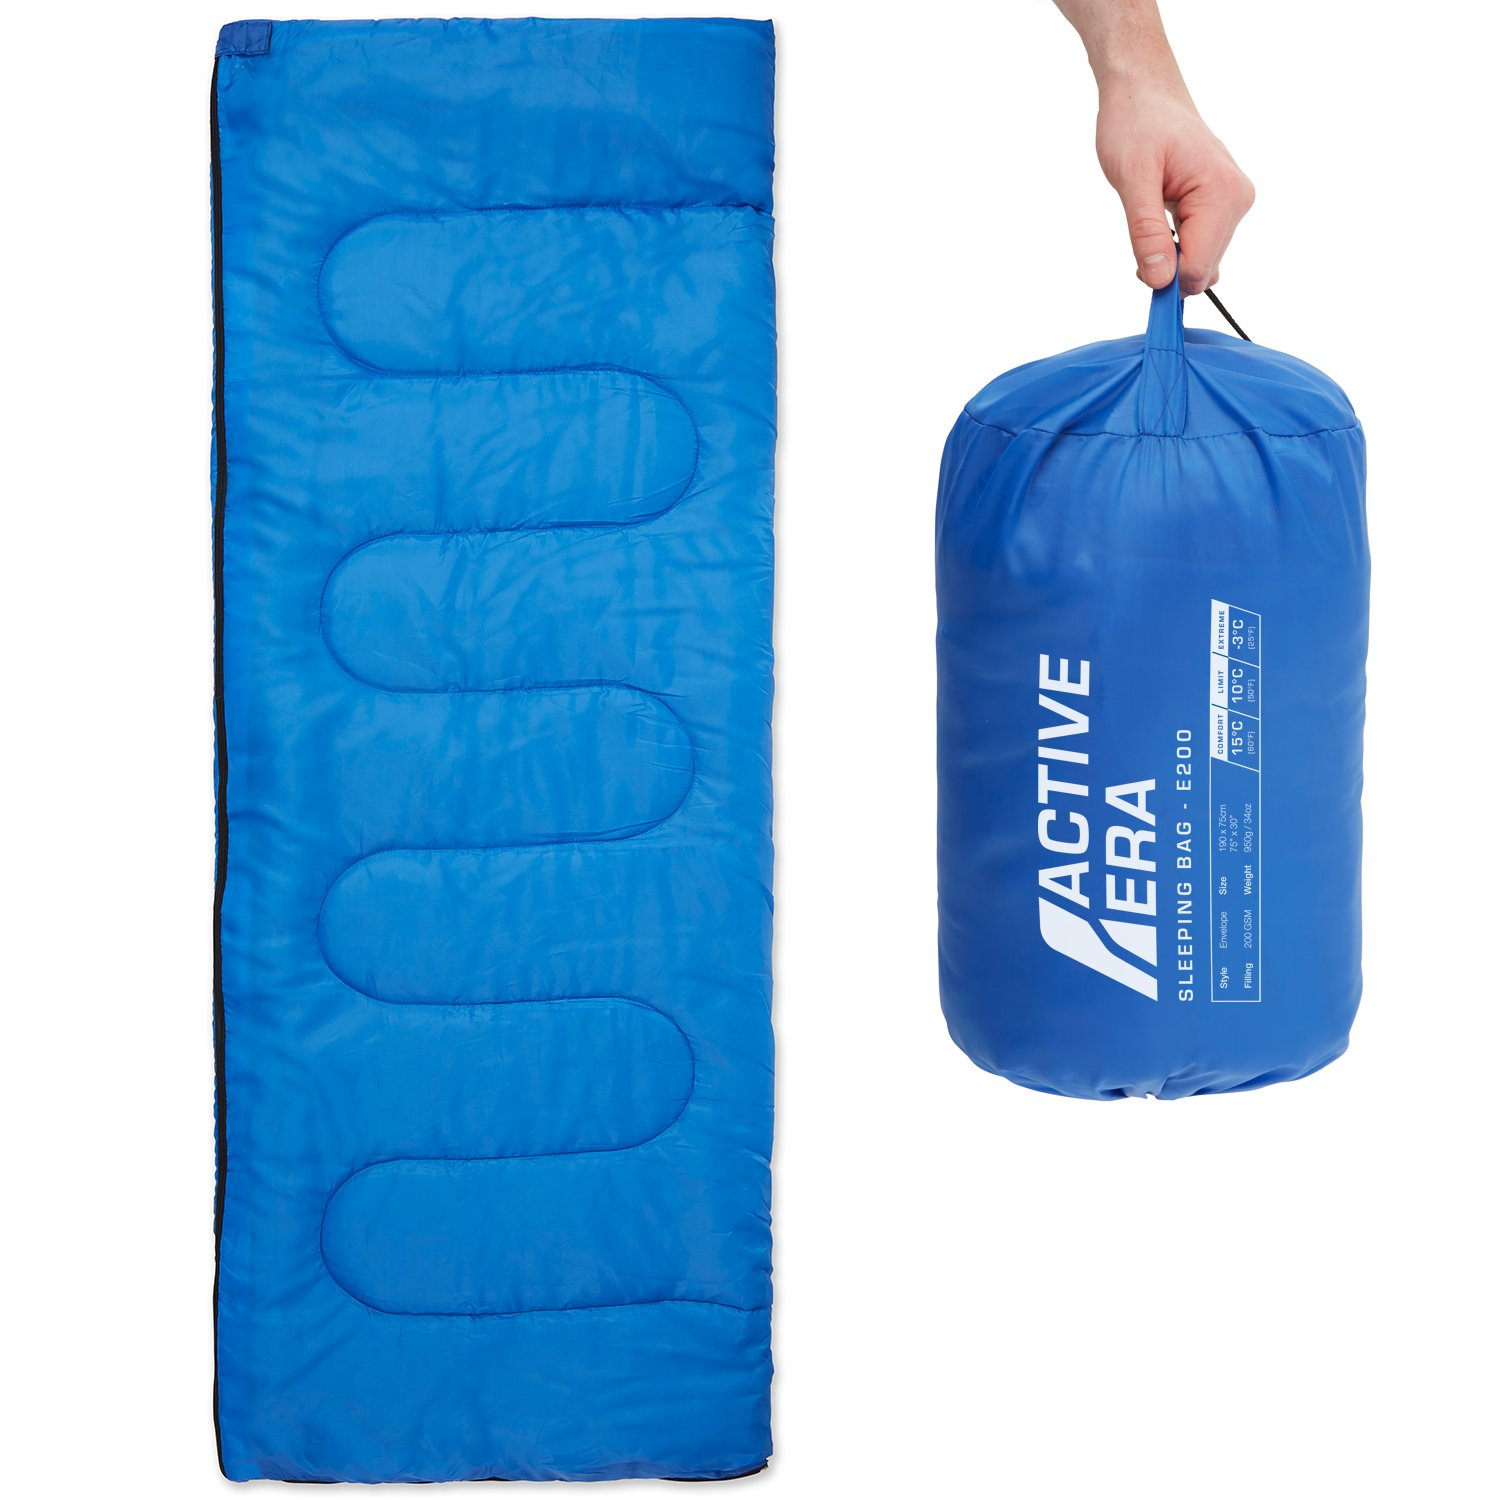 9d8734acd3d Amazon.com   Premium Lightweight Single Sleeping Bag - Warm and Water  Resistant, Perfect for Indoor Use or Outdoor Camping, Hiking, Fishing    Travelling ...